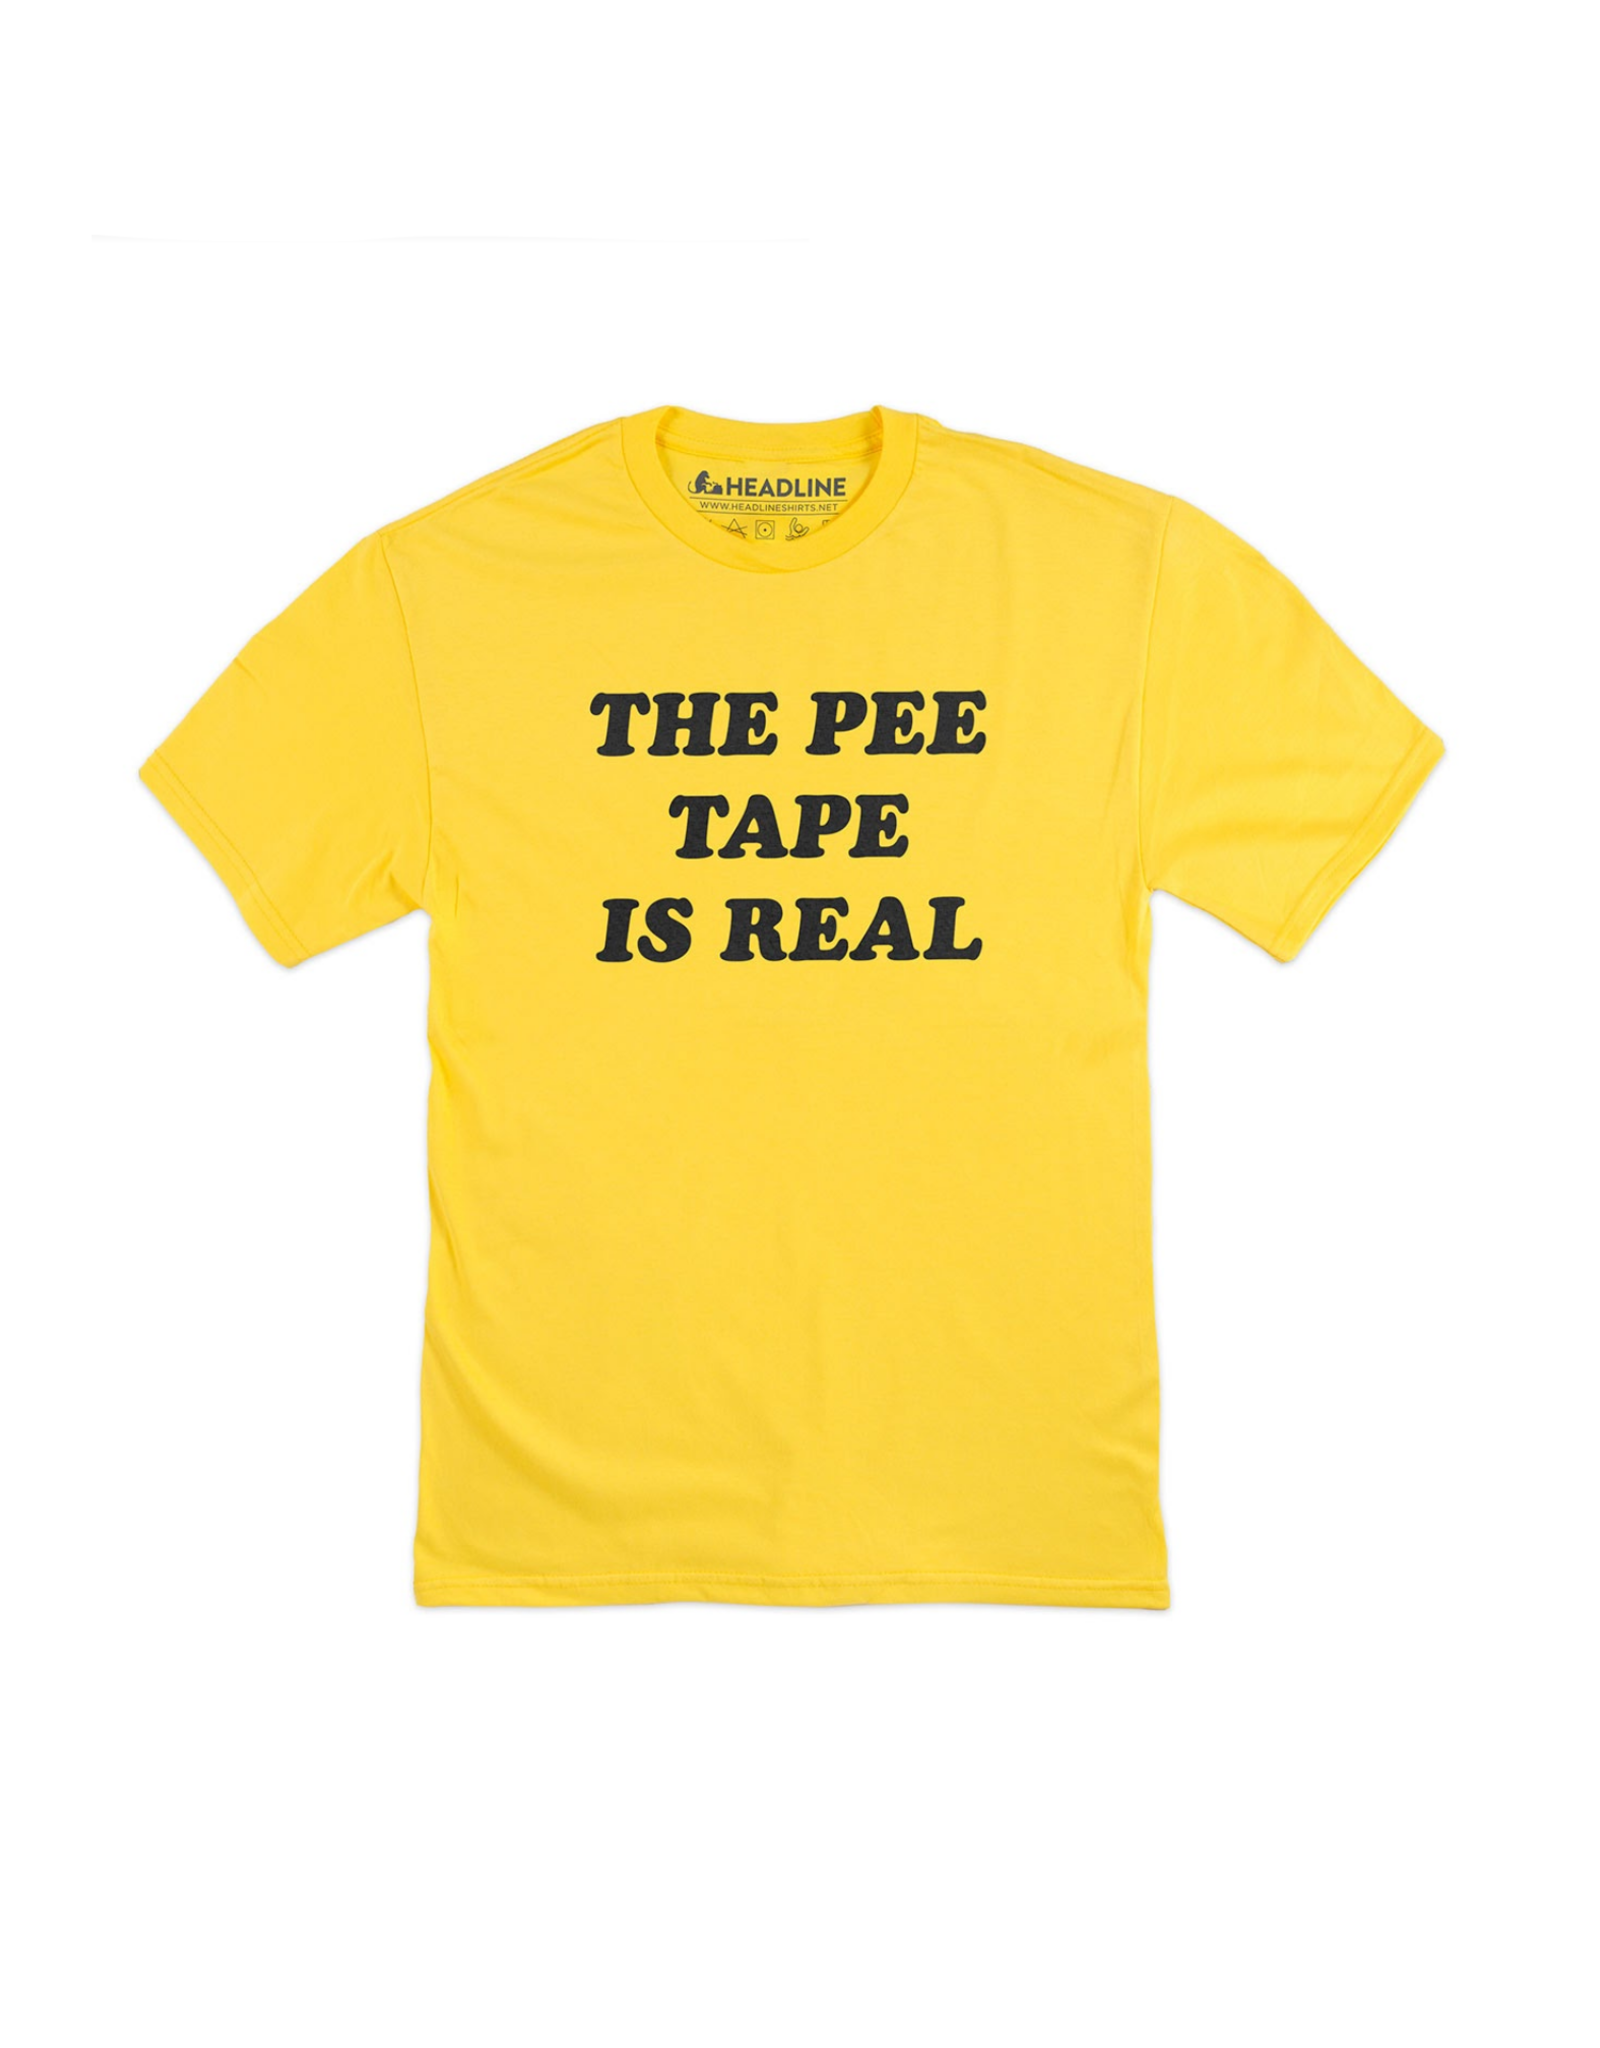 The Pee Tape is Real T-shirt